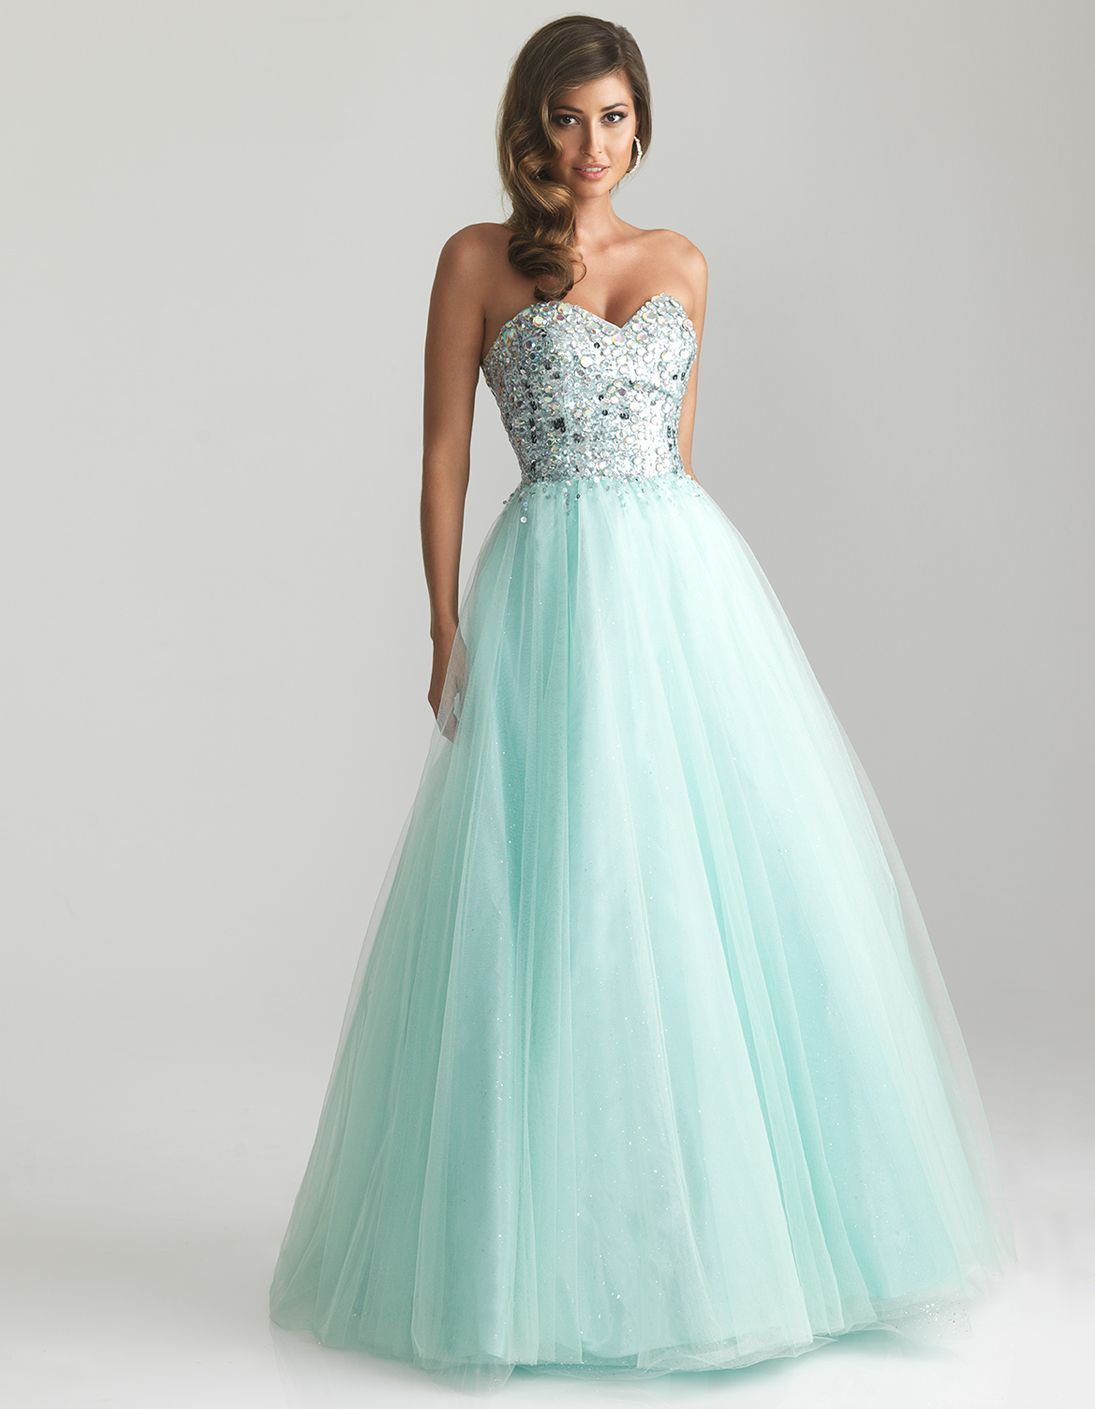 Unique Vintage | Pinterest | Prom, Dress formal and Vintage prom